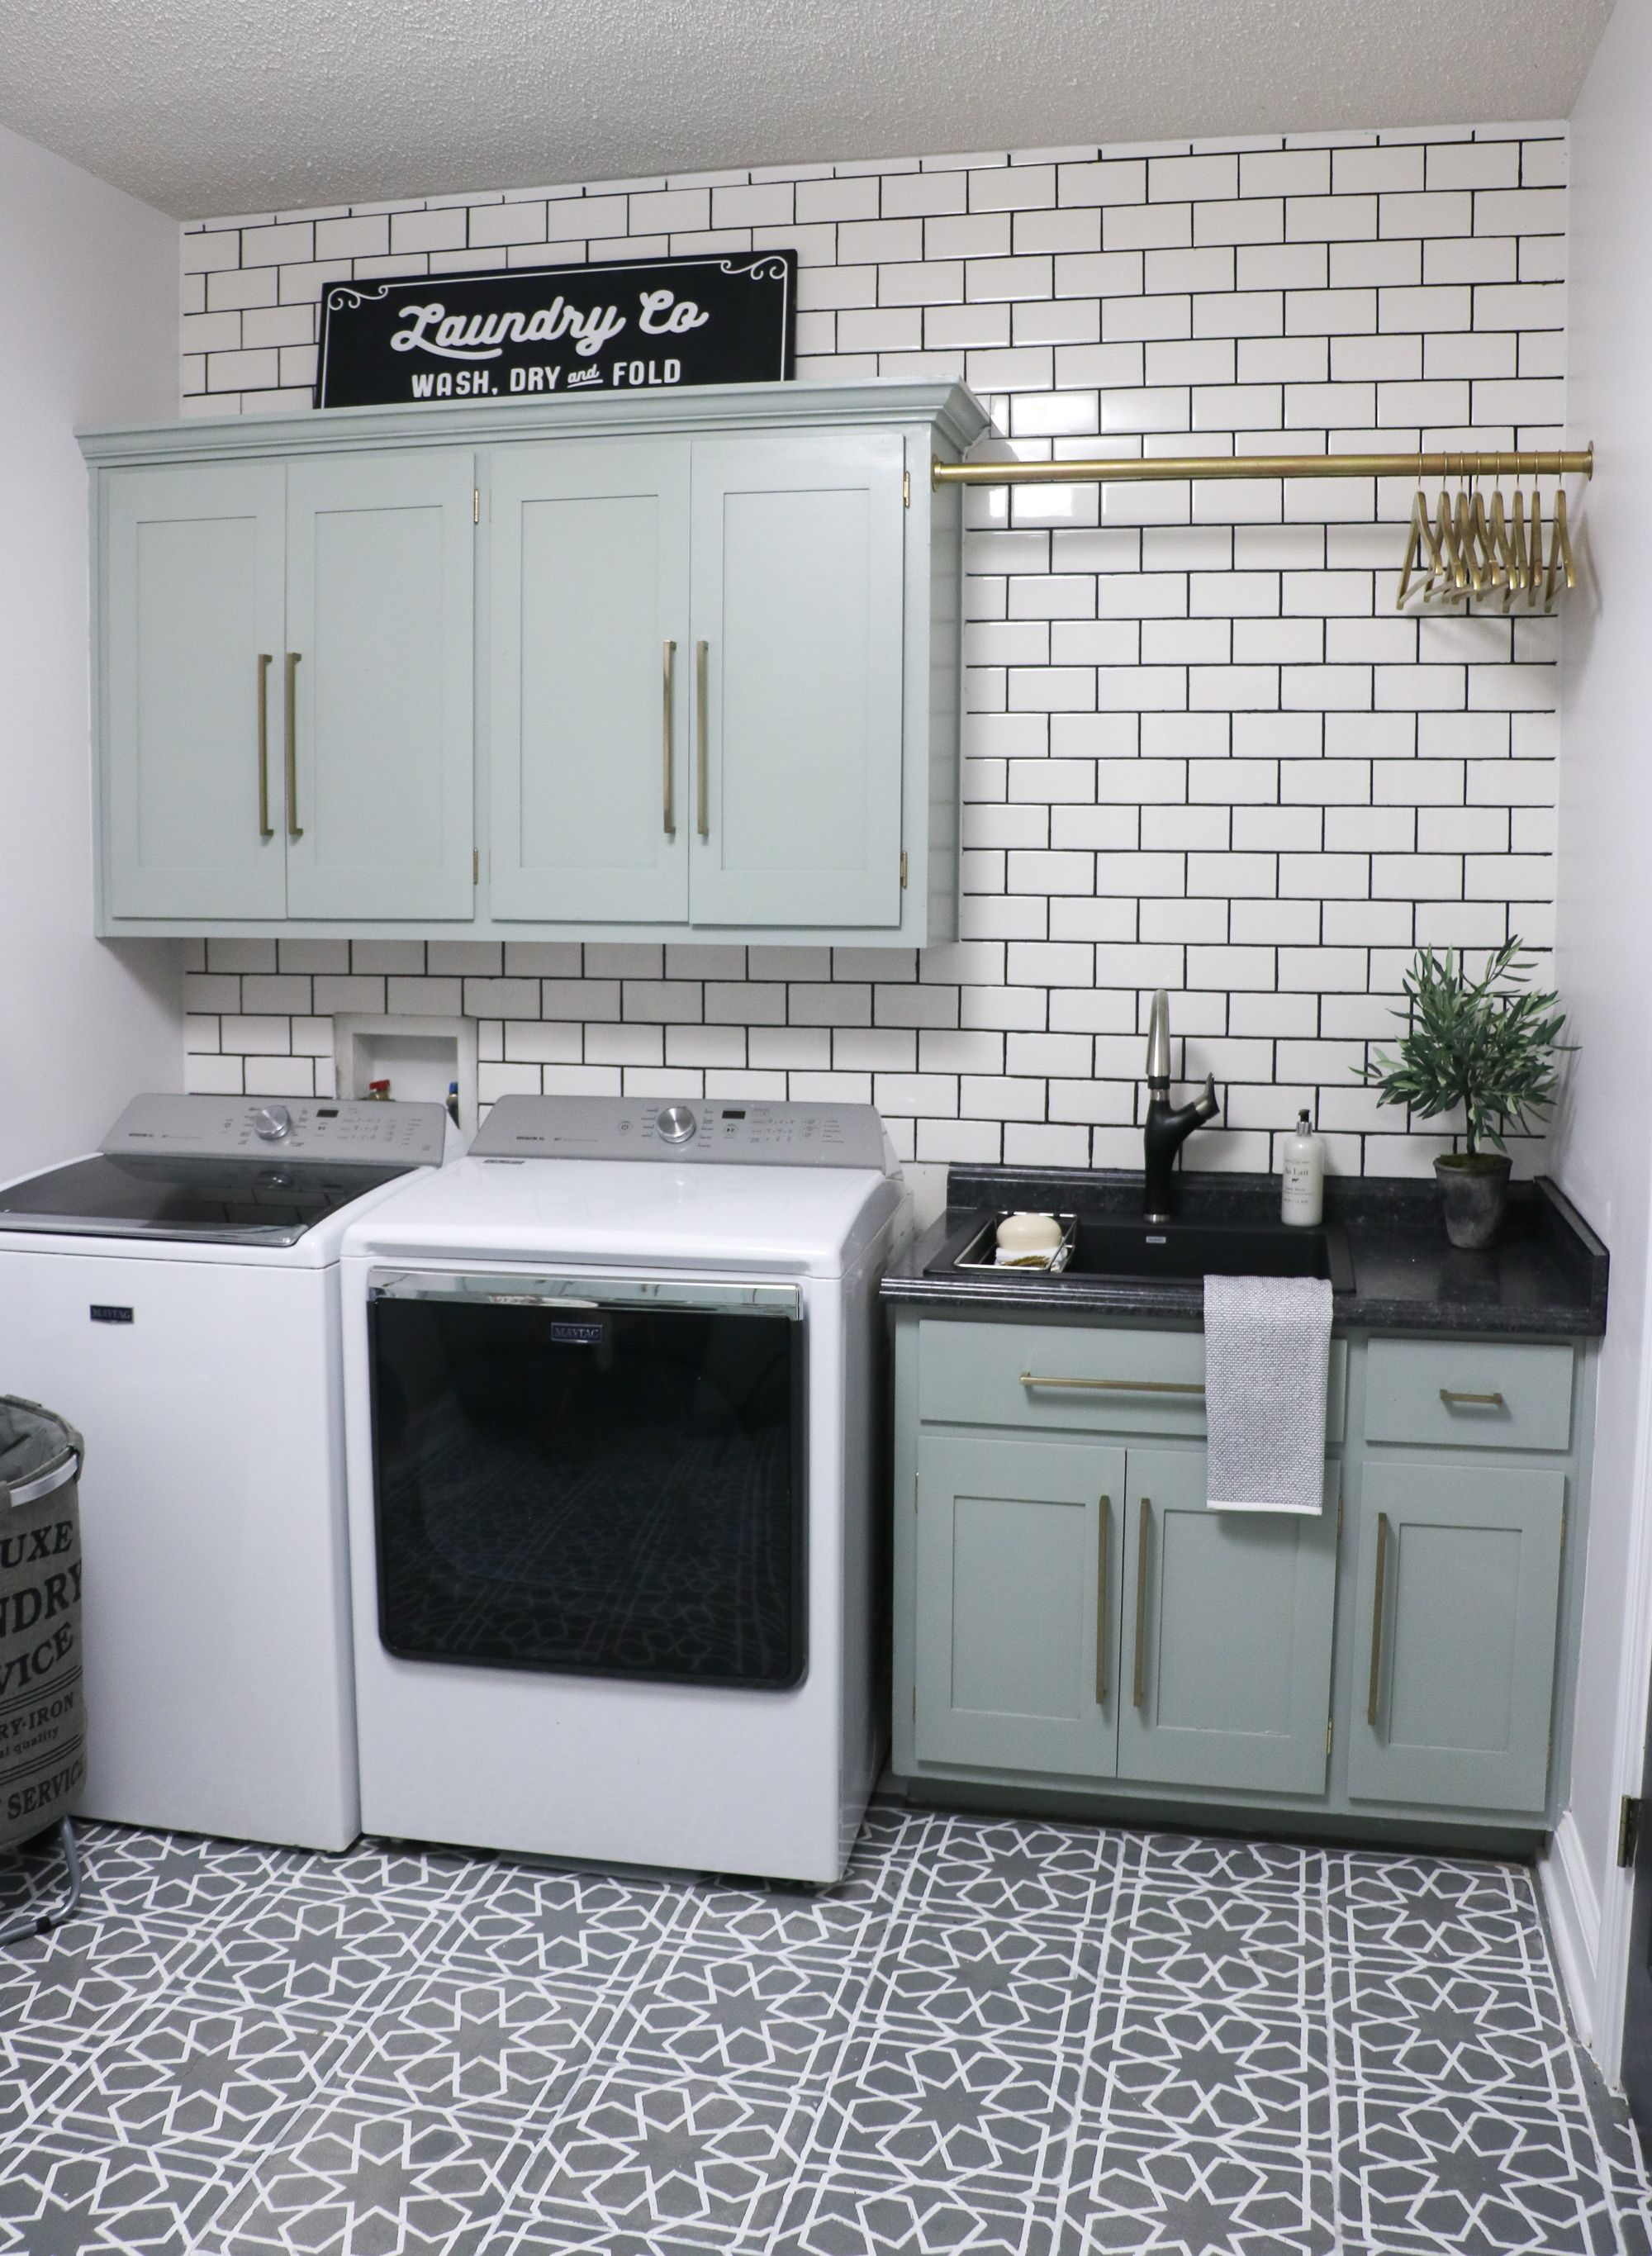 Diy Laundry Room Makeover Sincerely Sara D Home Decor Diy Projects Diy Laundry Room Makeover Laundry Room Diy Laundry Room Remodel